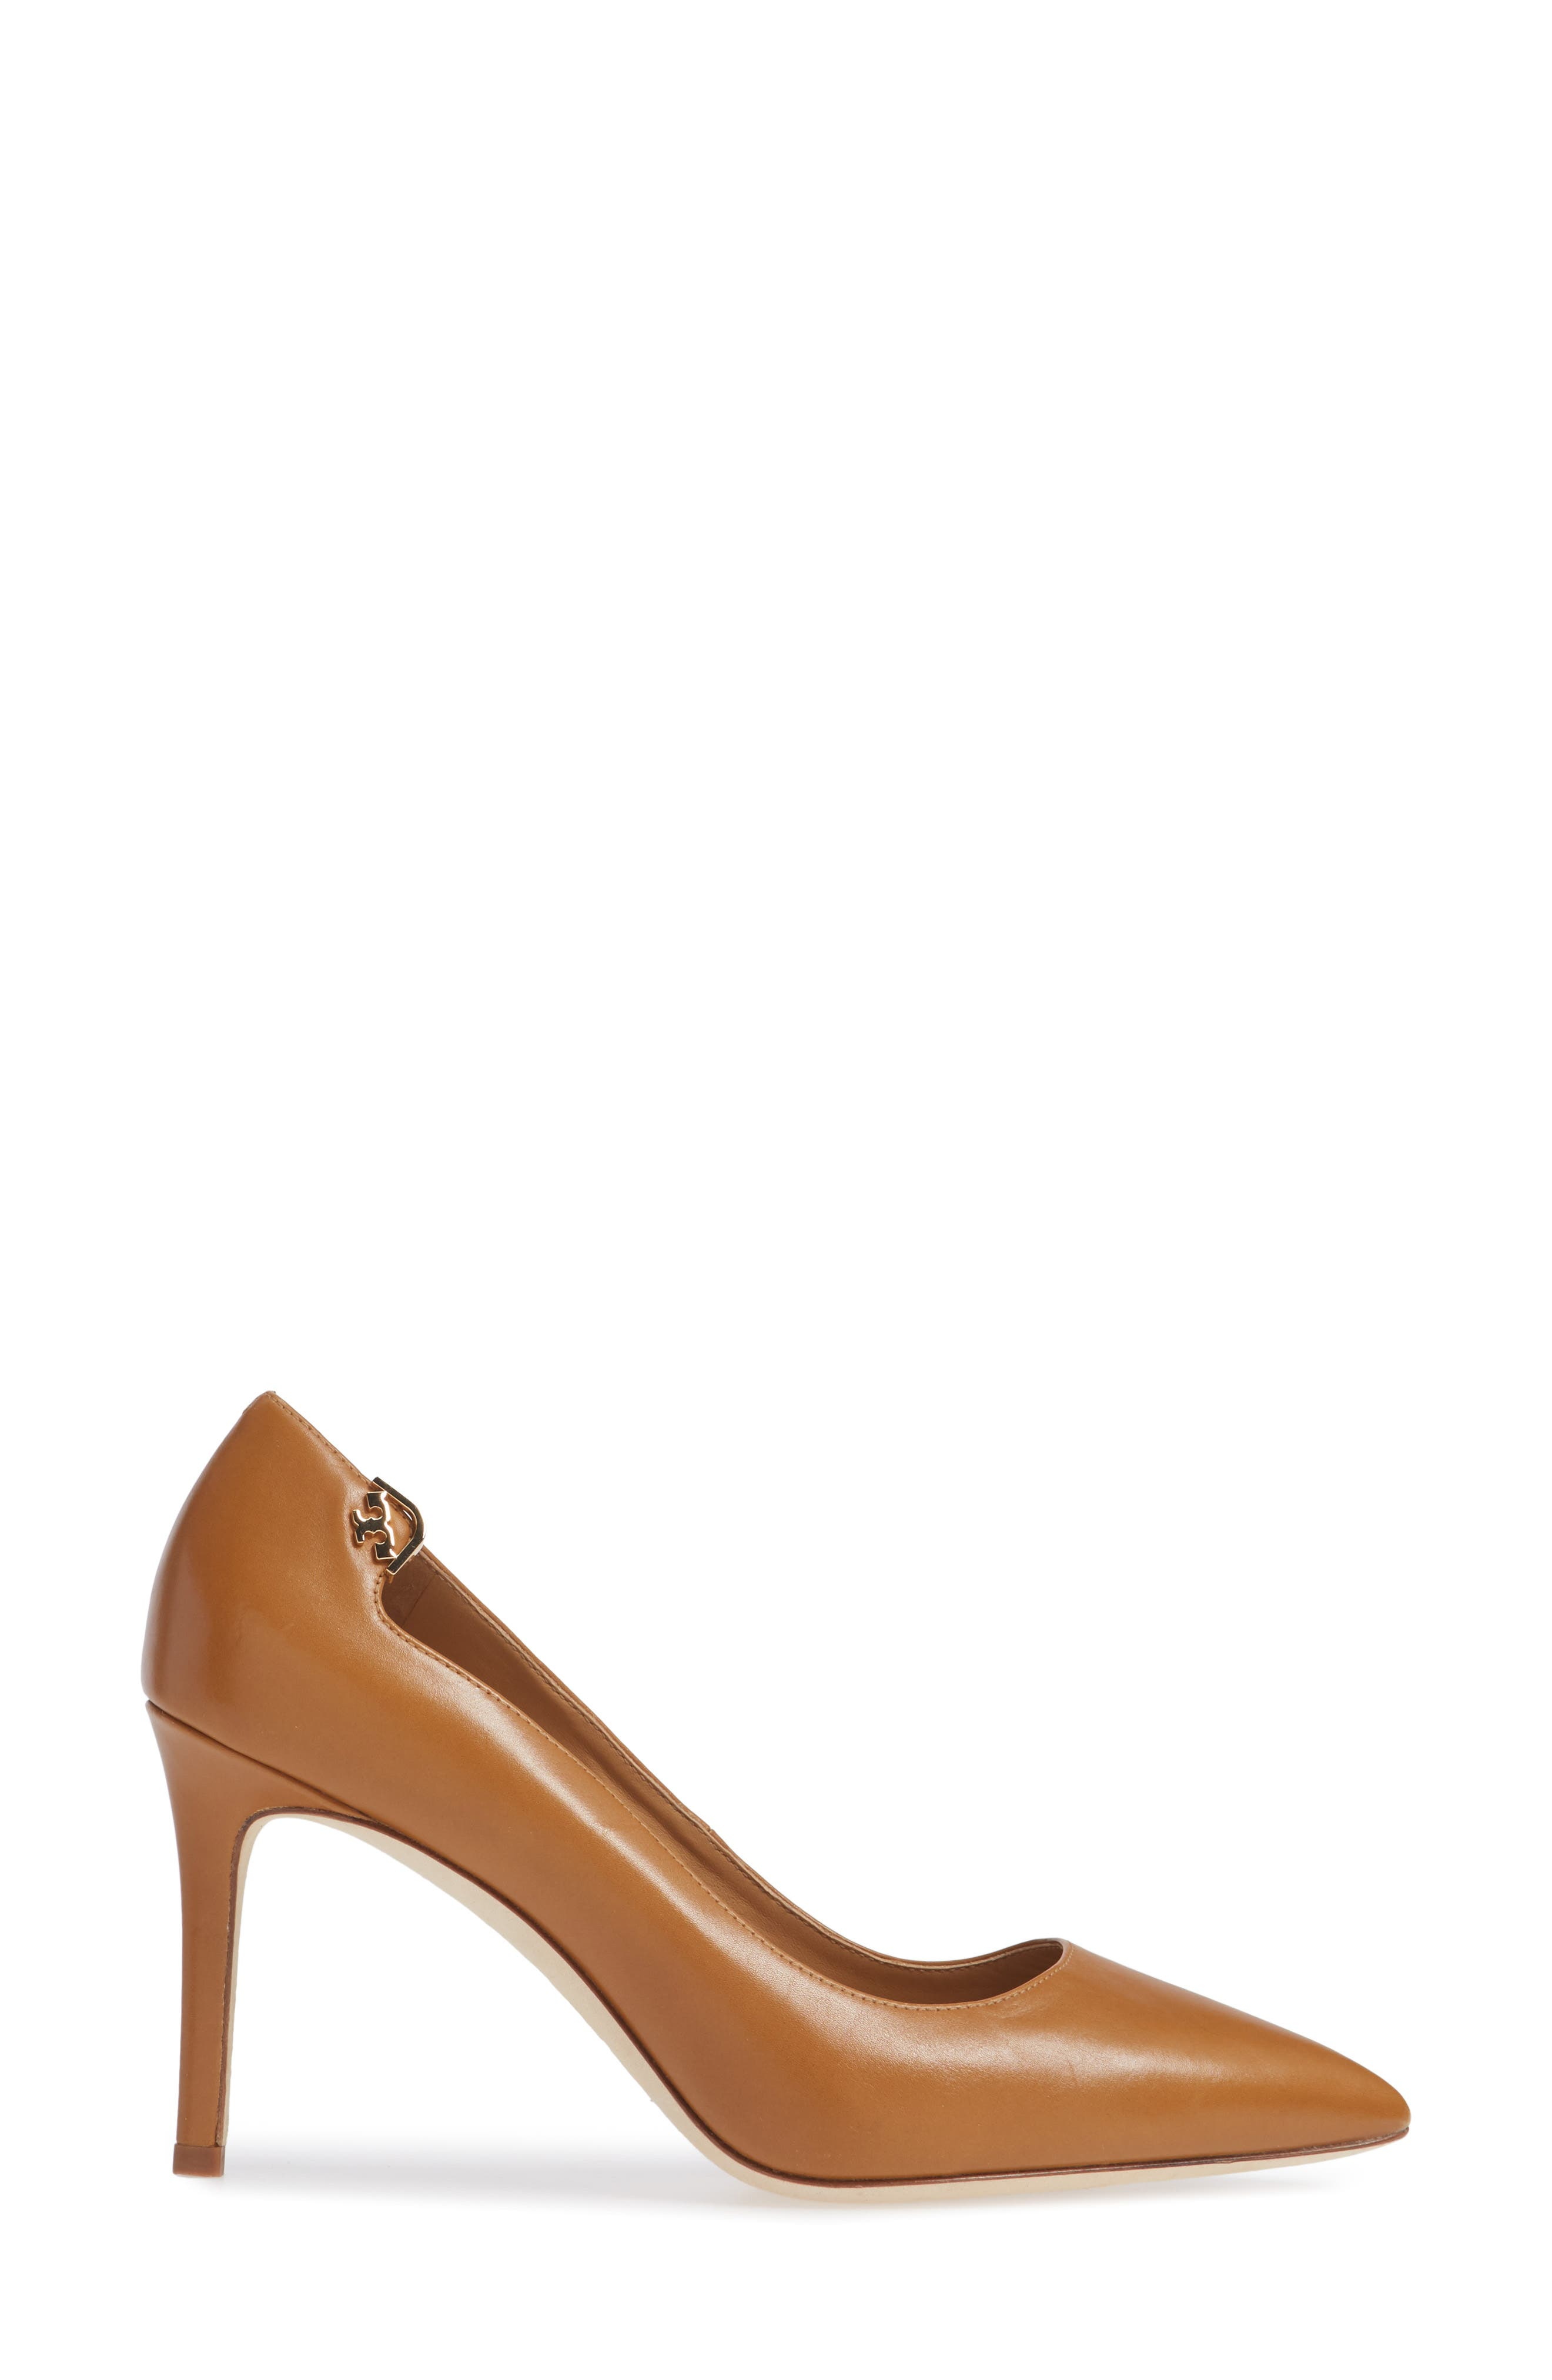 Elizabeth Pointy Toe Pump,                             Alternate thumbnail 3, color,                             DEEP VICUNA